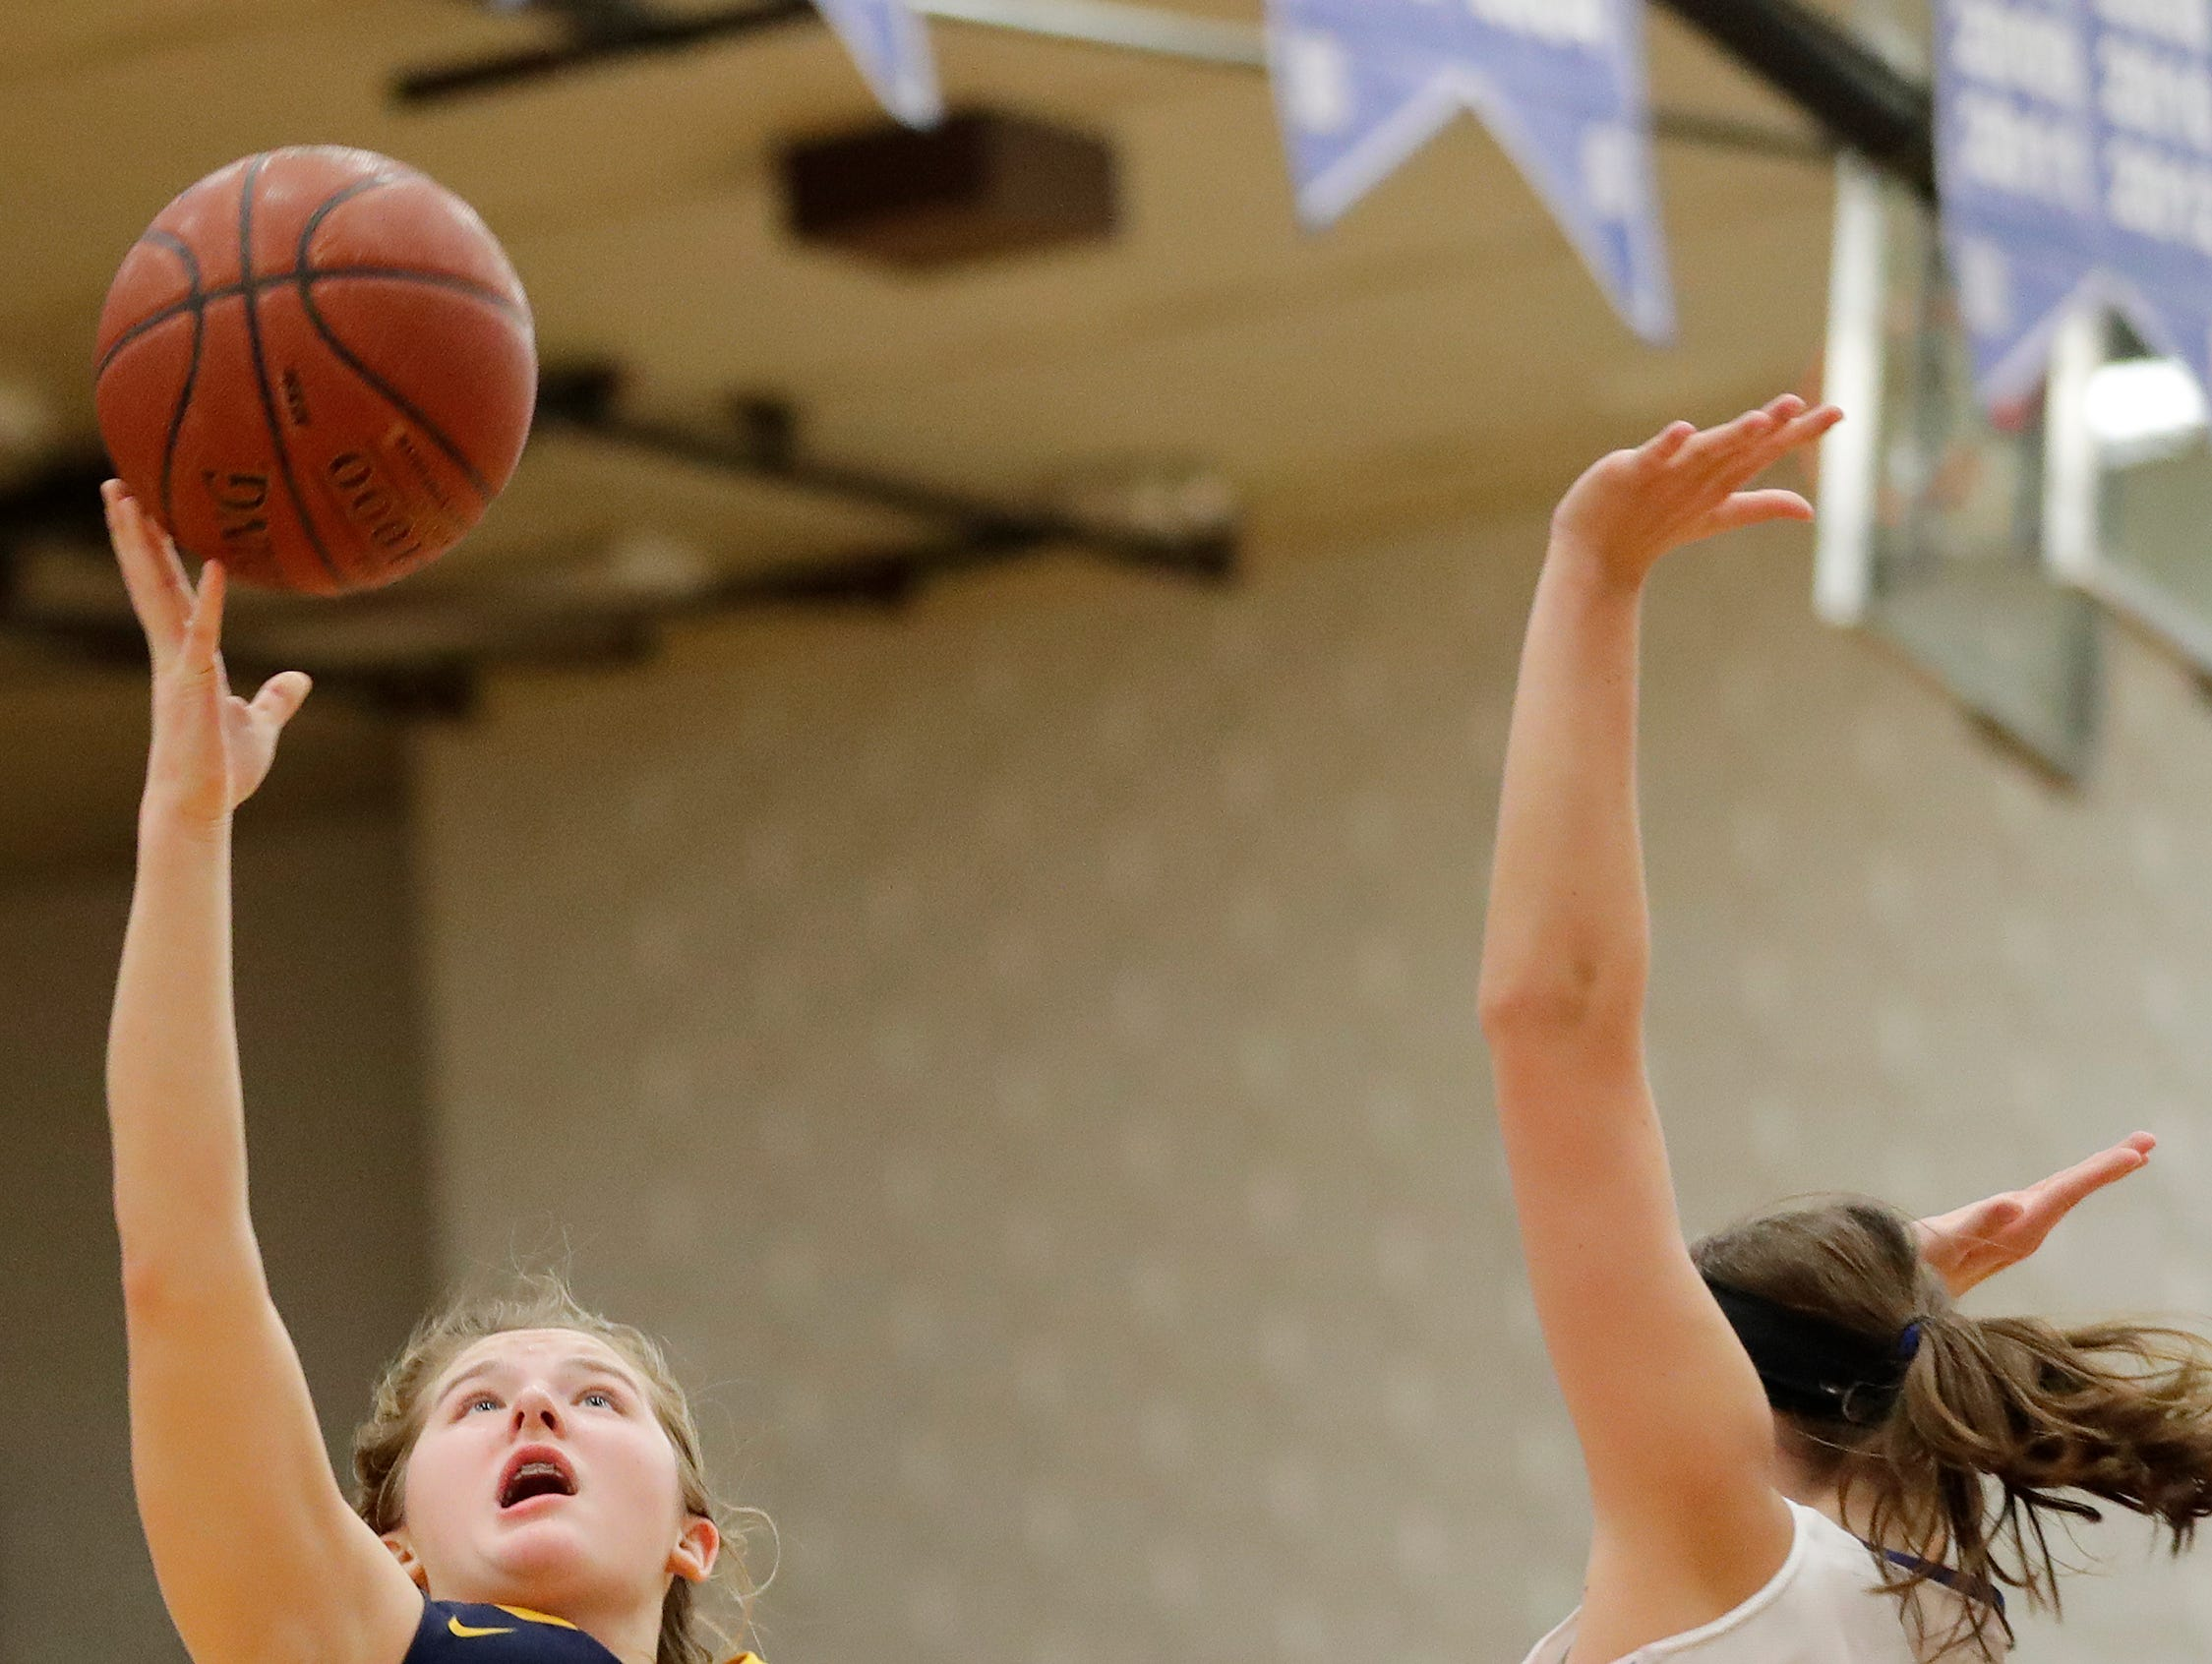 Sheboygan North's Emma Belmore (21) shoots against Green Bay Southwest in a girls basketball game at Southwest High School on Tuesday, February 5, 2019 in Green Bay, Wis.